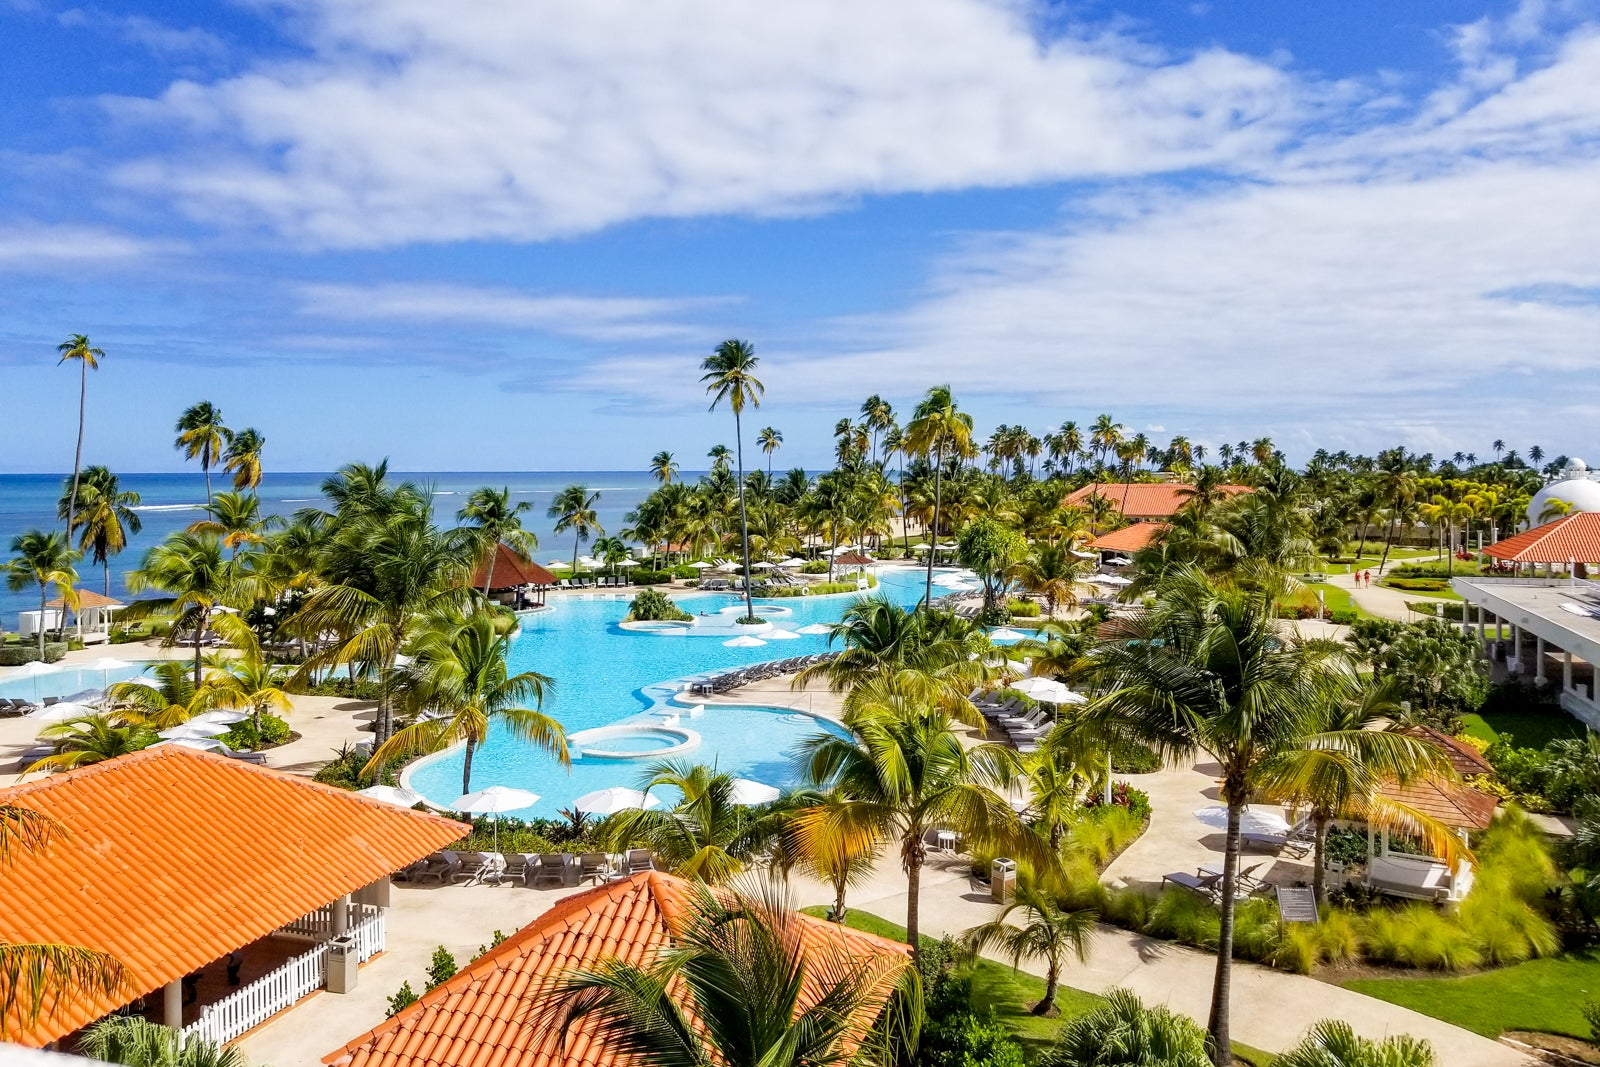 Hyatt launches free COVID-19 tests at all Latin America resorts